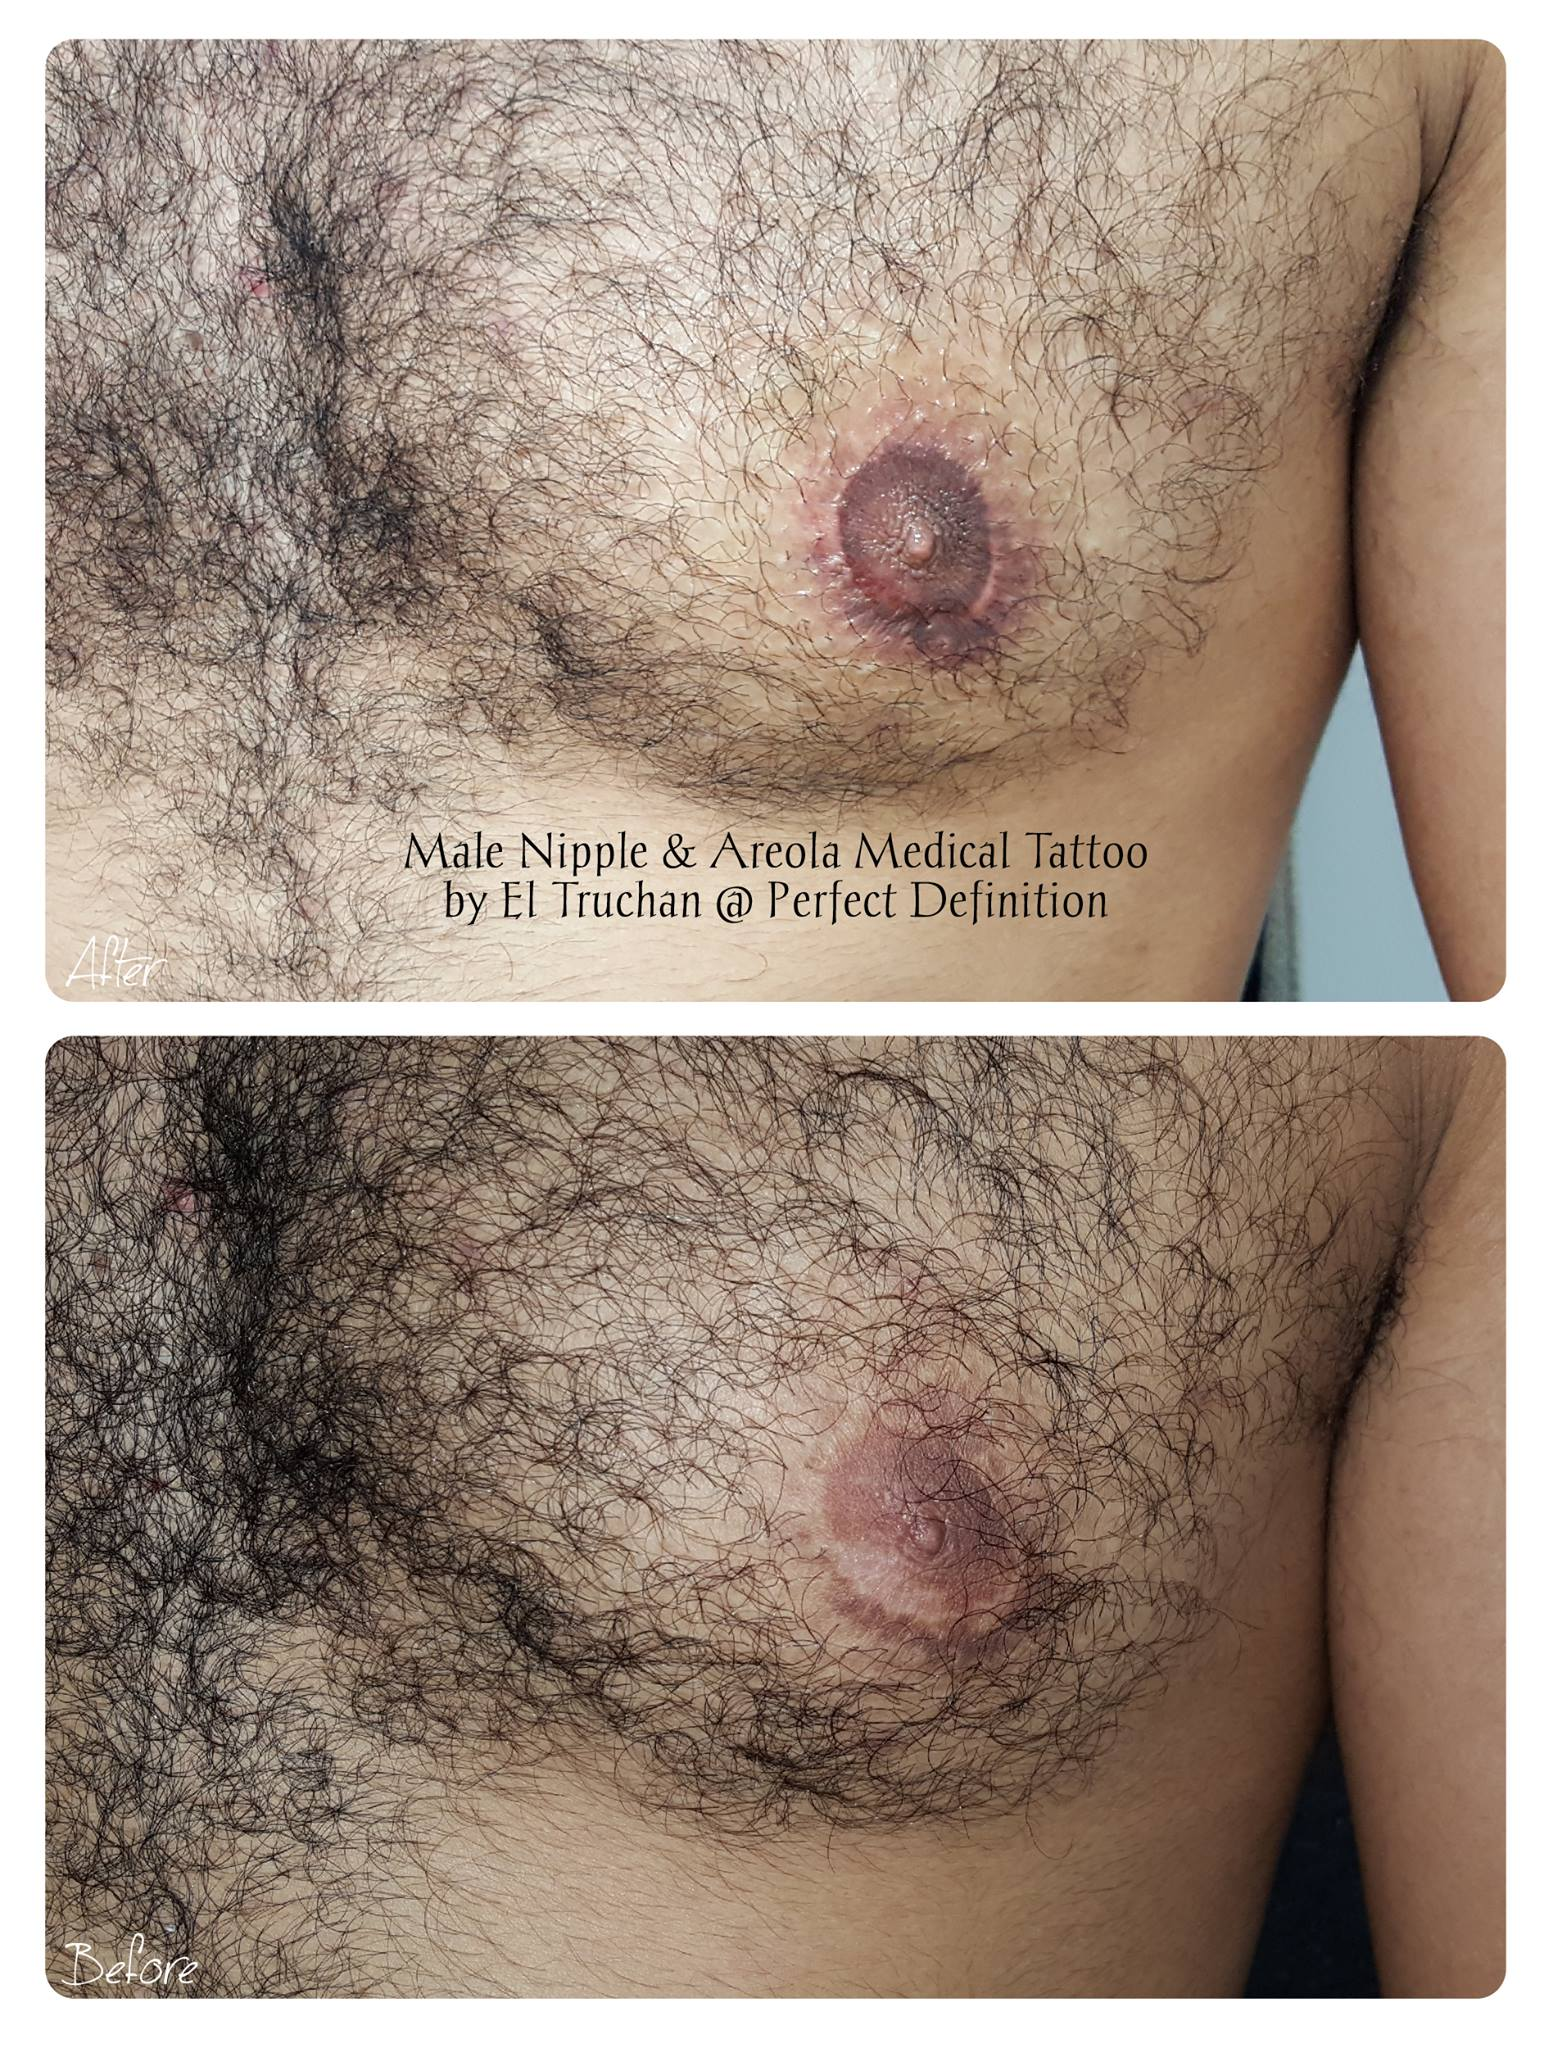 Male Nipple & Areola Medical Tattoo